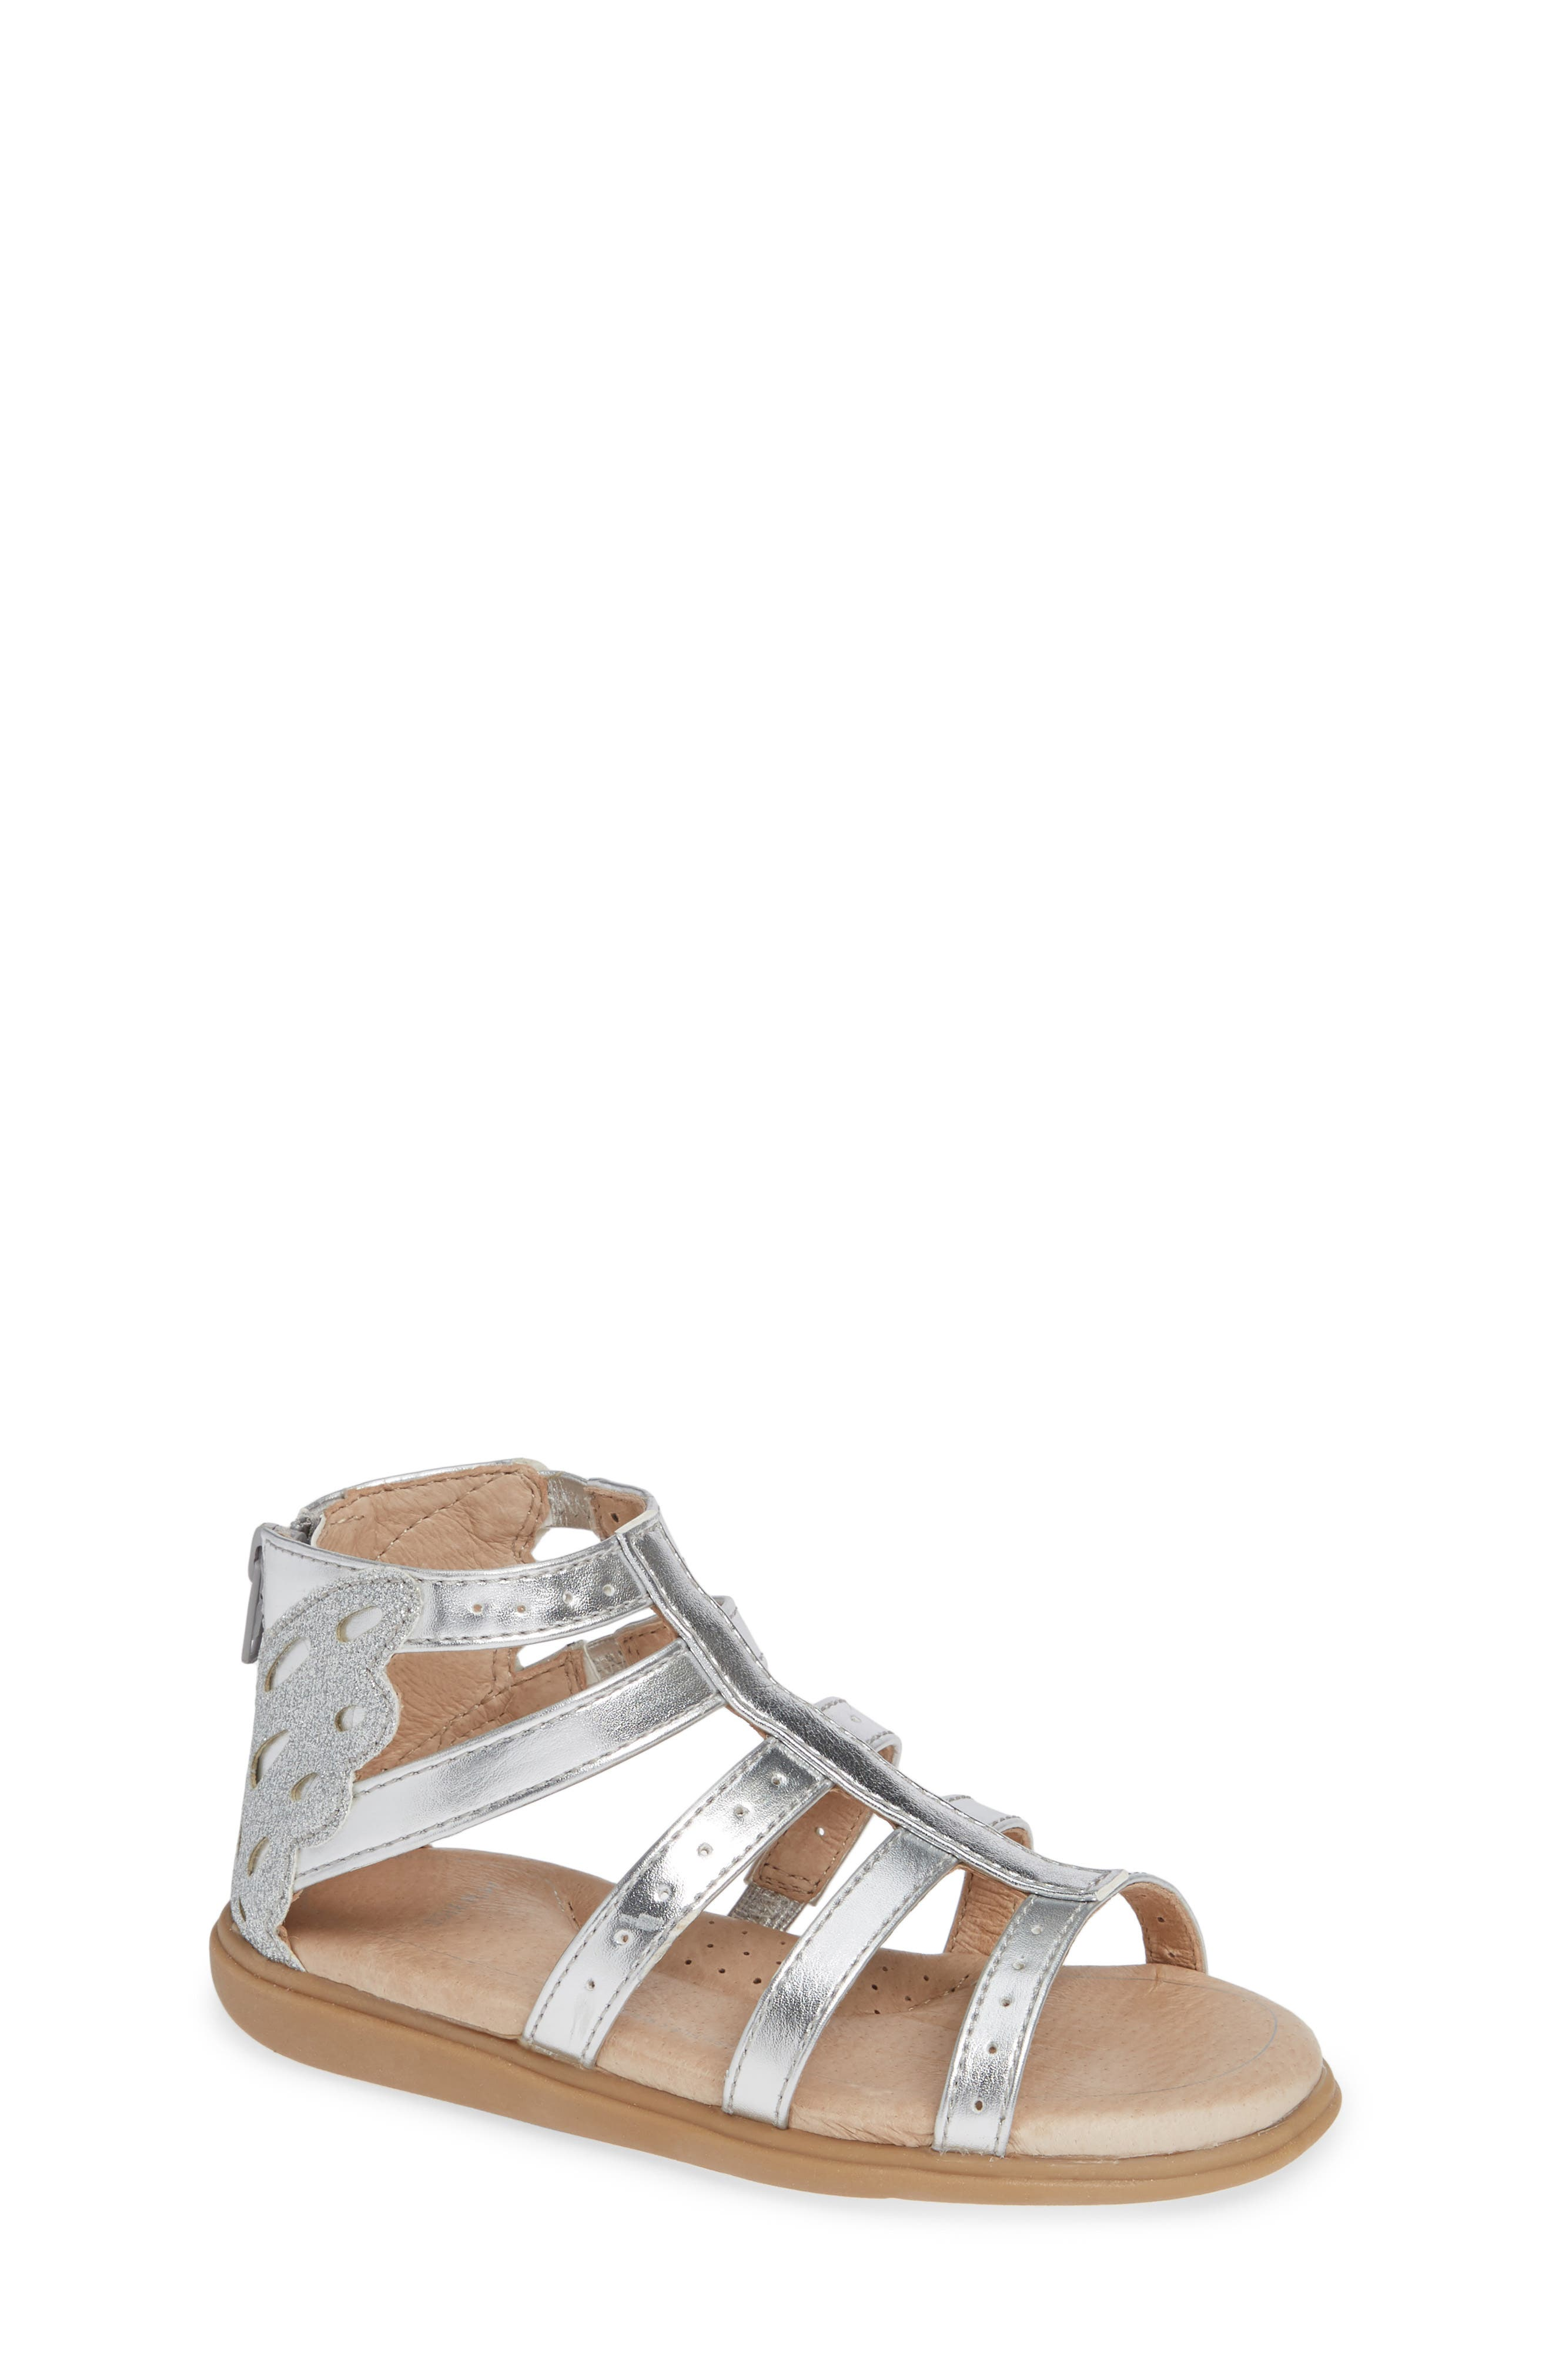 SOLE PLAY Camille Metallic Sandal, Main, color, SILVER